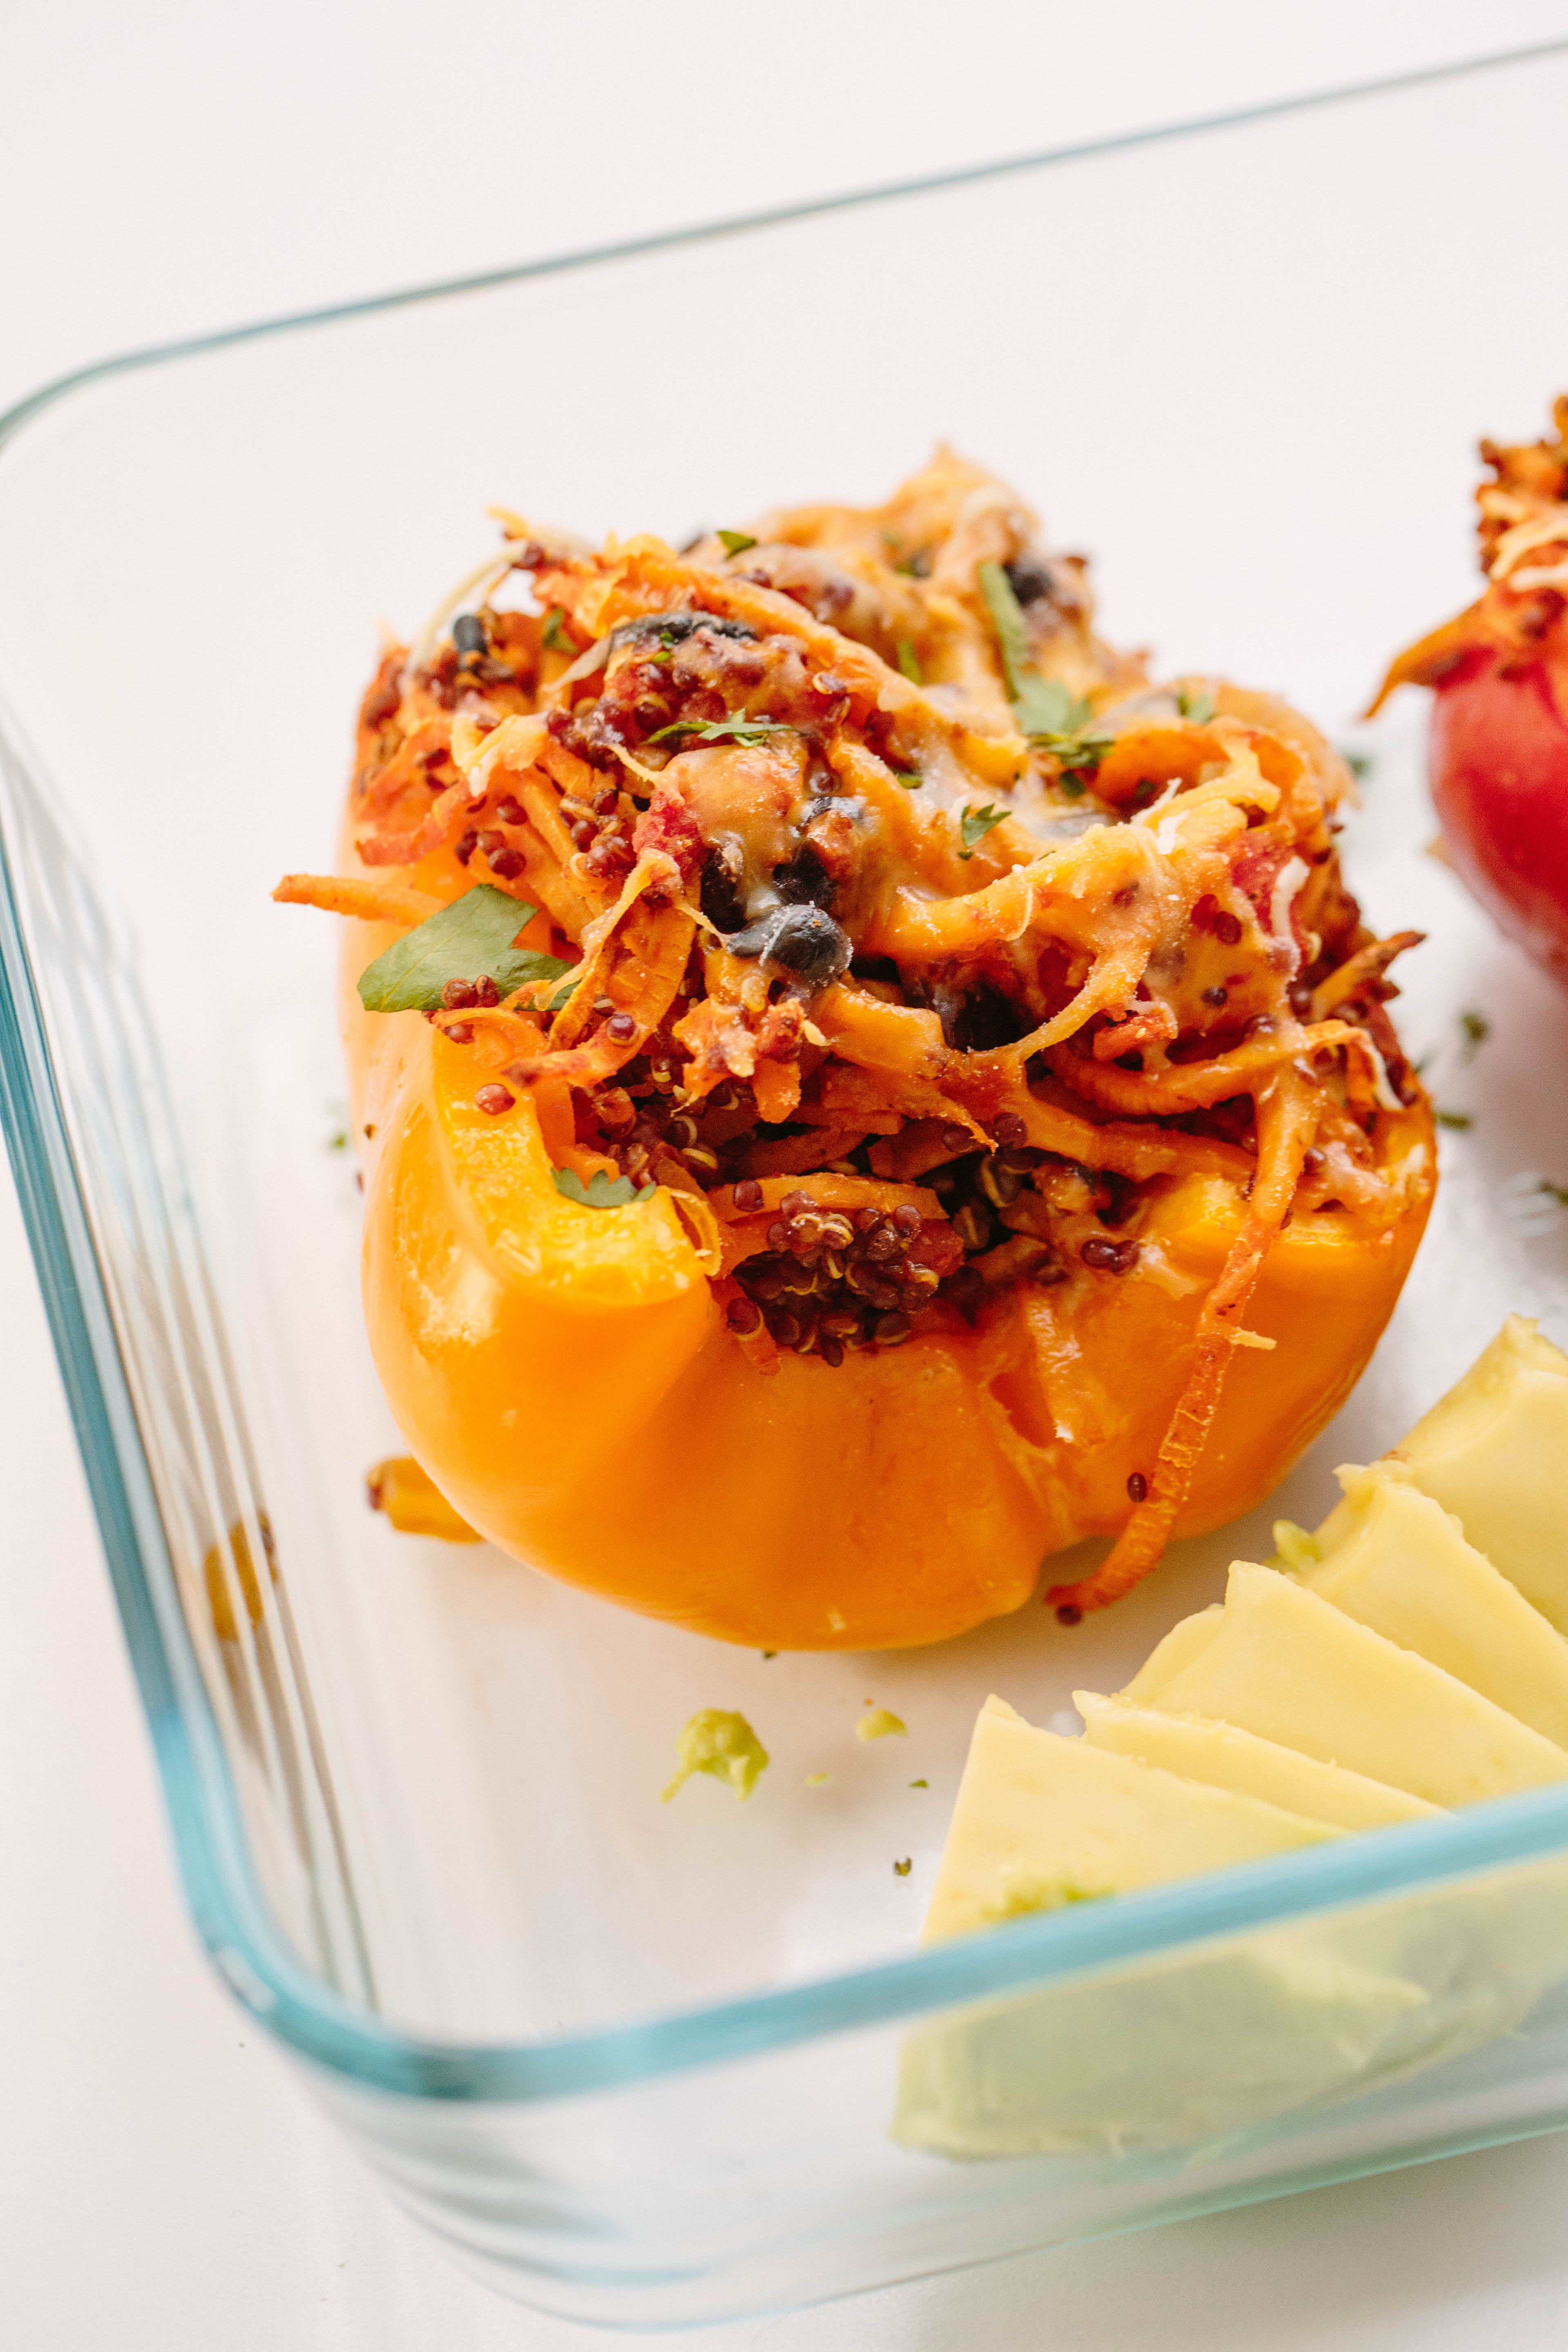 Southwest Quinoa and Spiralized Sweet Potato Stuffed Bell Peppers